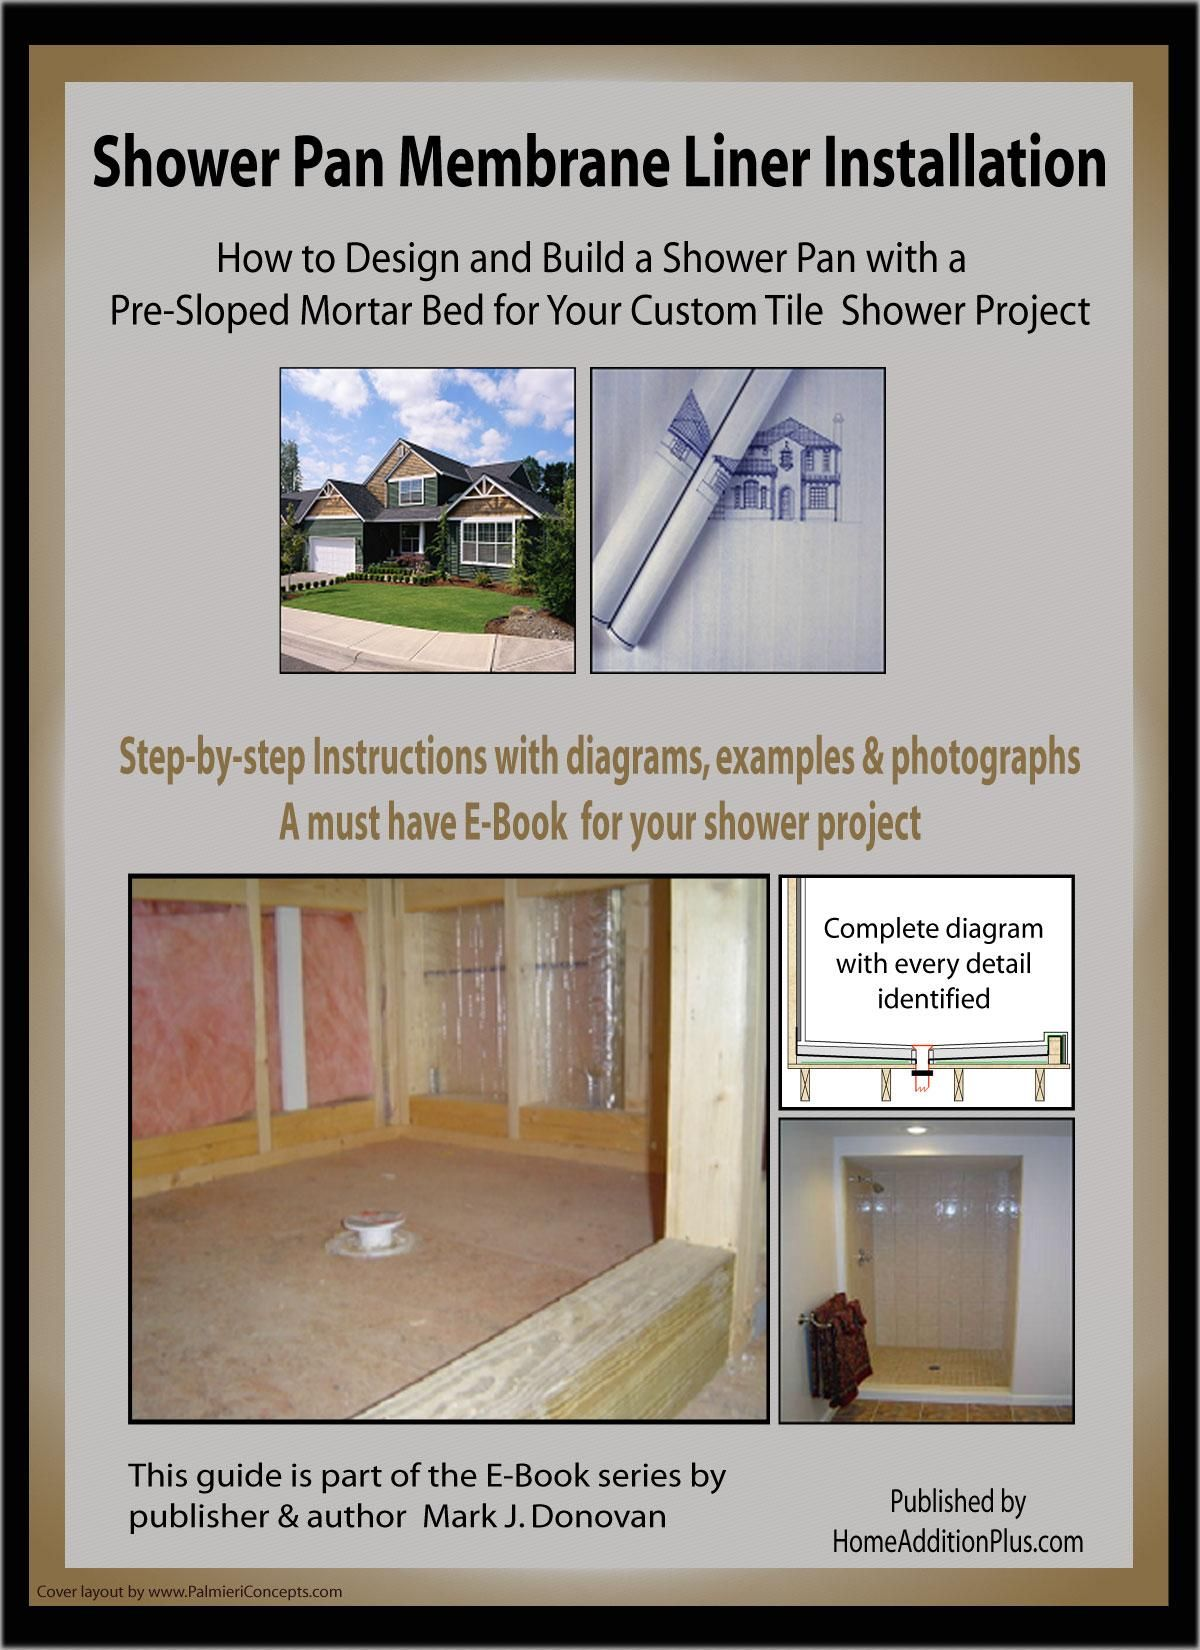 Want to build your own custom tiled shower? My \